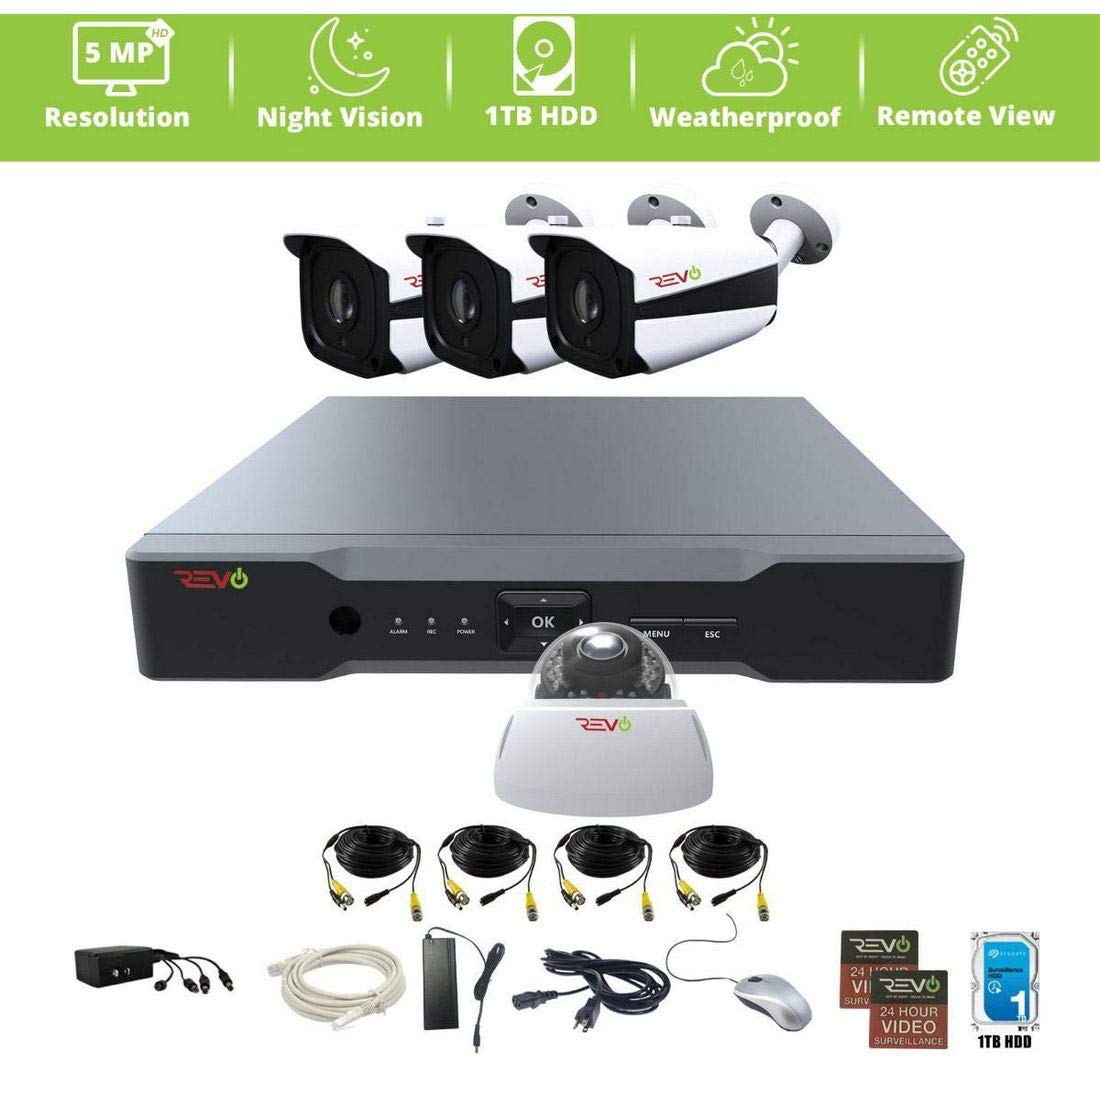 Revo America AeroHD 4Ch. 5MP DVR, 1TB HDD Video Security System, 3 x 5MP IR Bullet Cameras, 1 x 5MP Dome Camera Indoor Outdoor – Remote Access via Smart Phone, Tablet, PC MAC